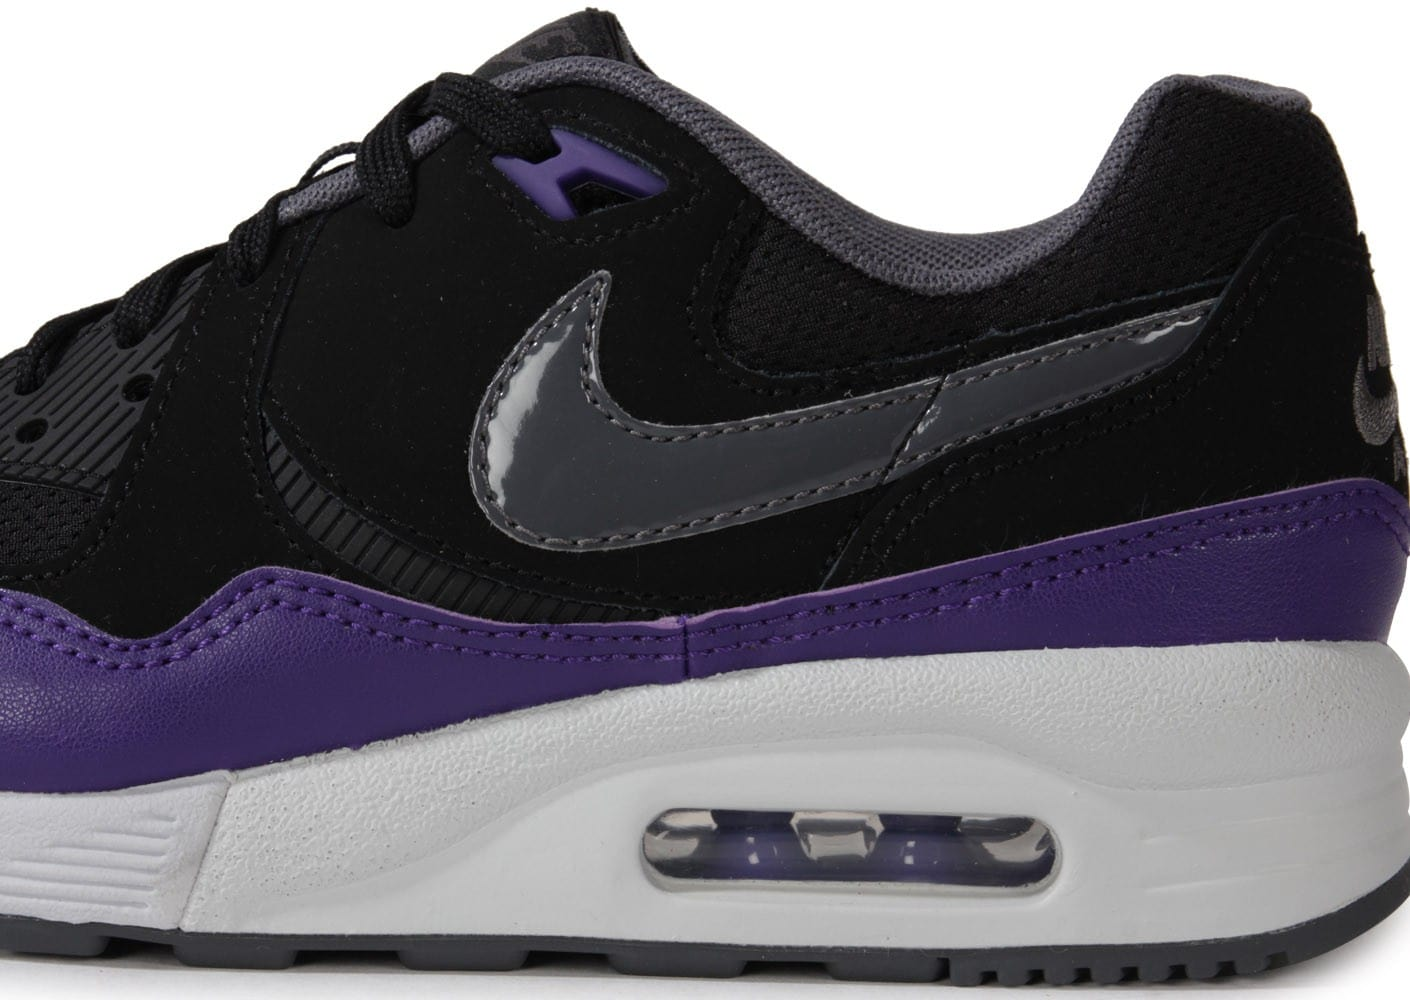 nike air max light noir violet chaussures chaussures chausport. Black Bedroom Furniture Sets. Home Design Ideas